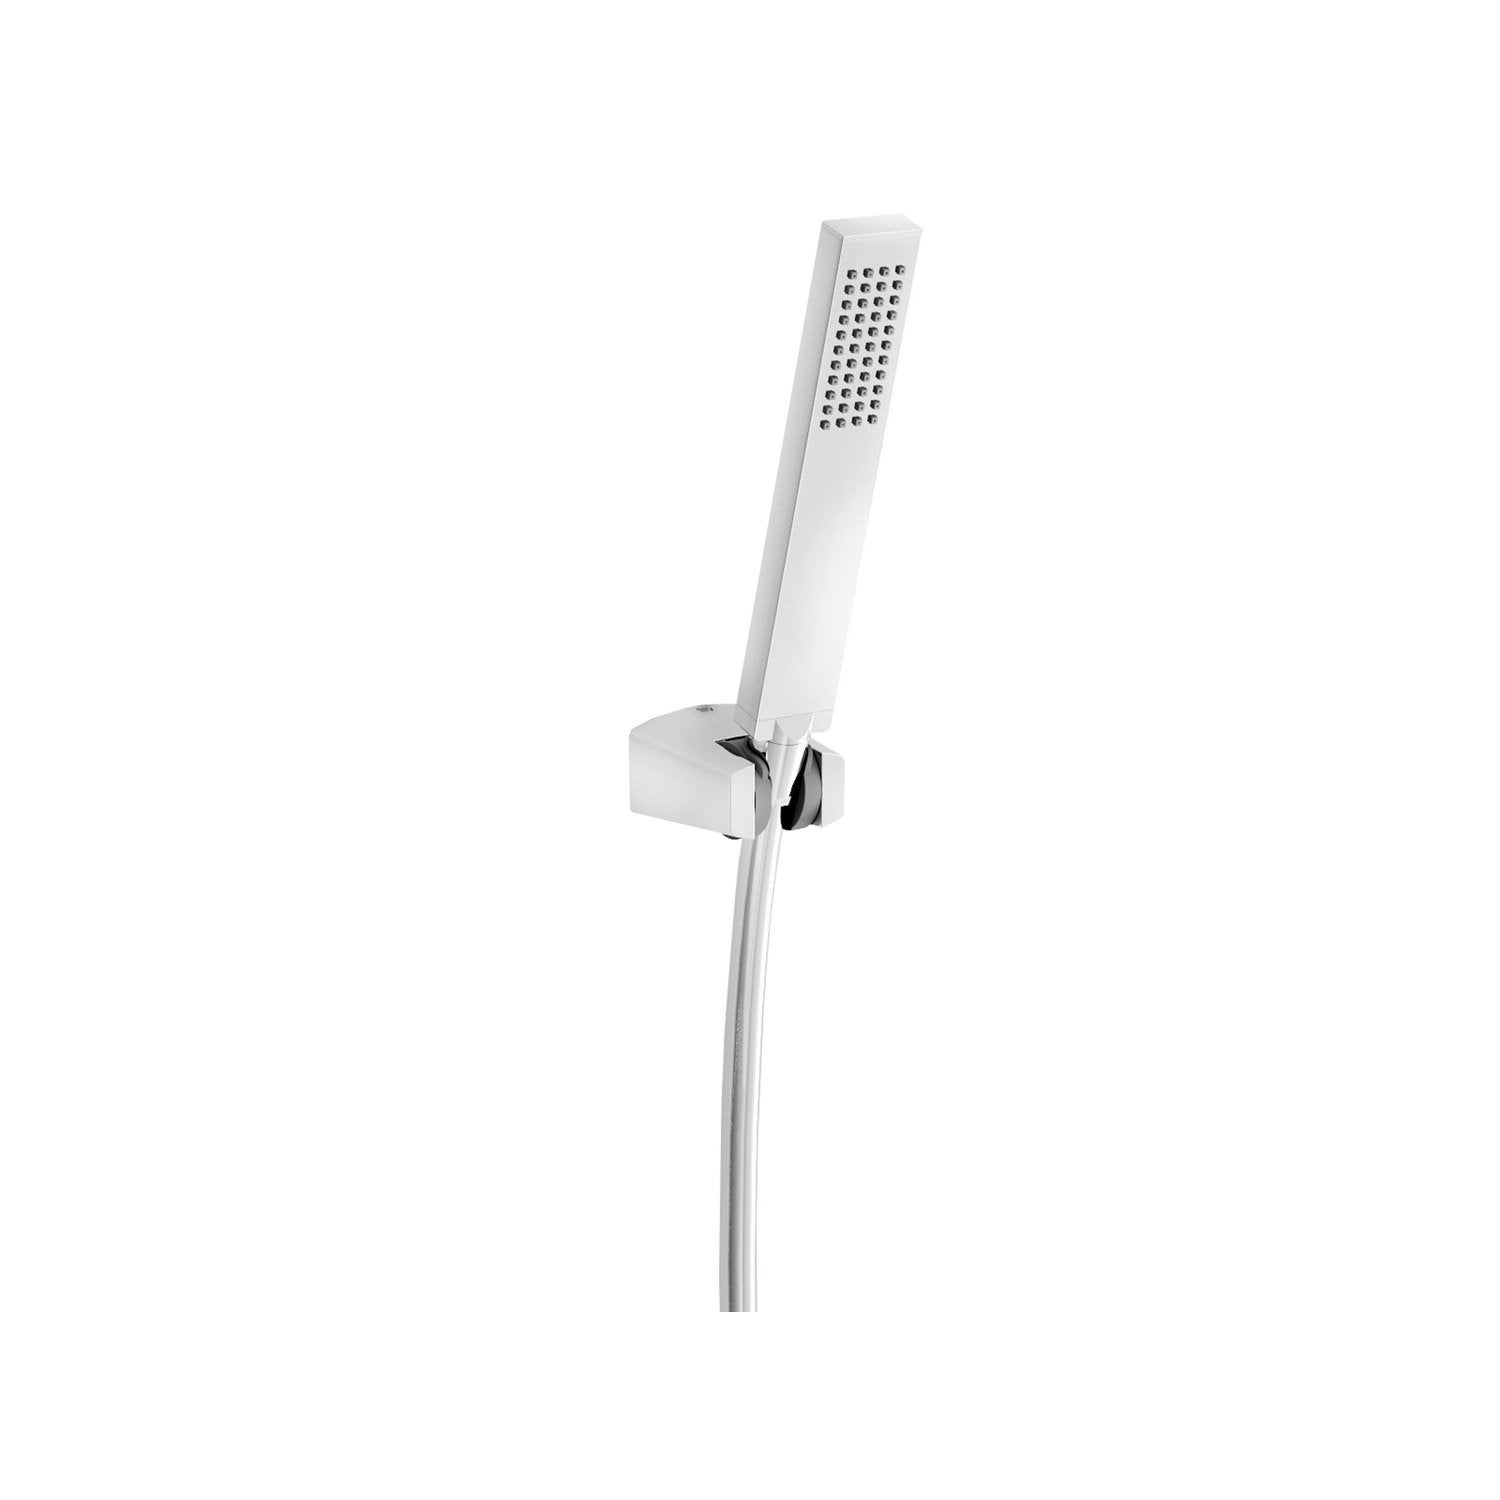 Pommeau de douche 1 jet flexible support carre ice leroy merlin - Pommeau douche leroy merlin ...